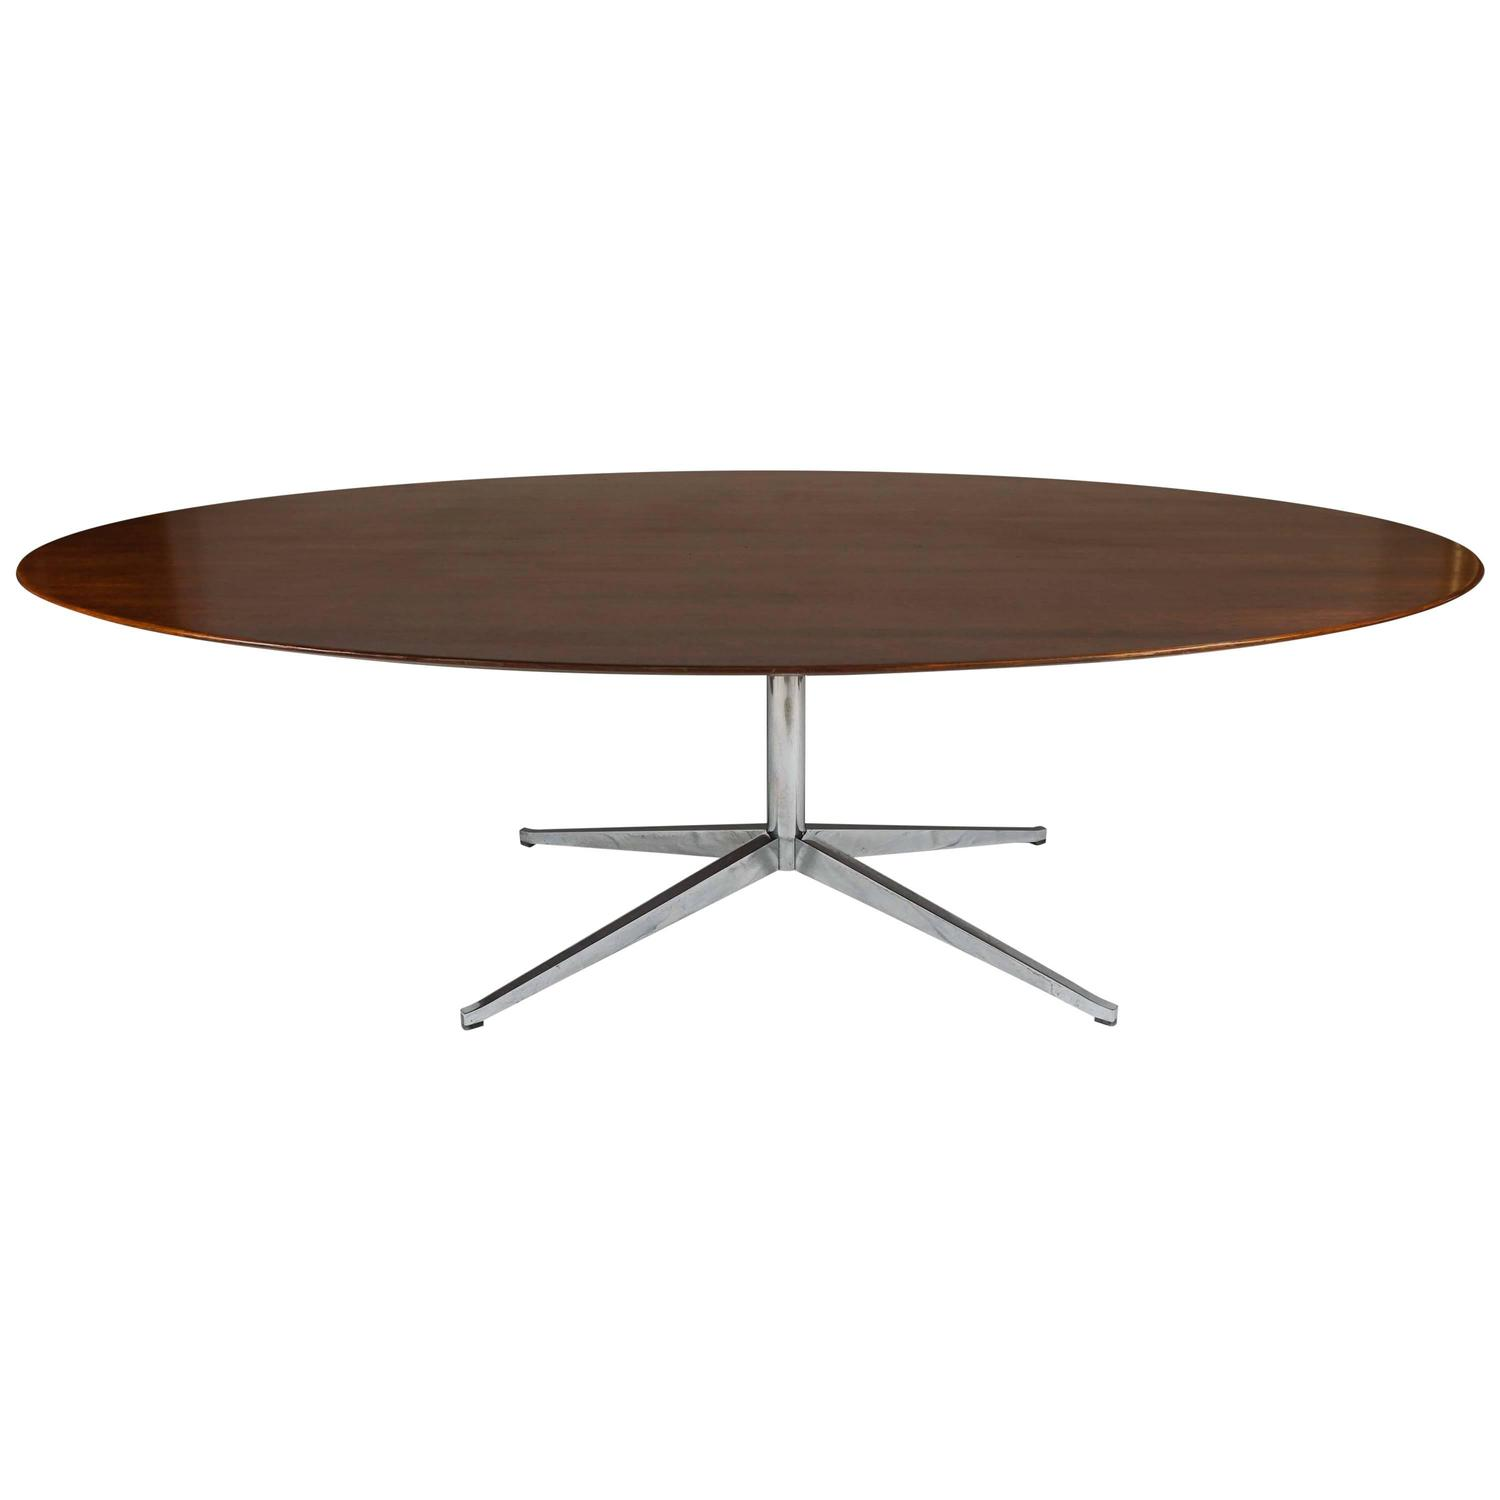 Florence Knoll Oval Rosewood Dining Table, Desk